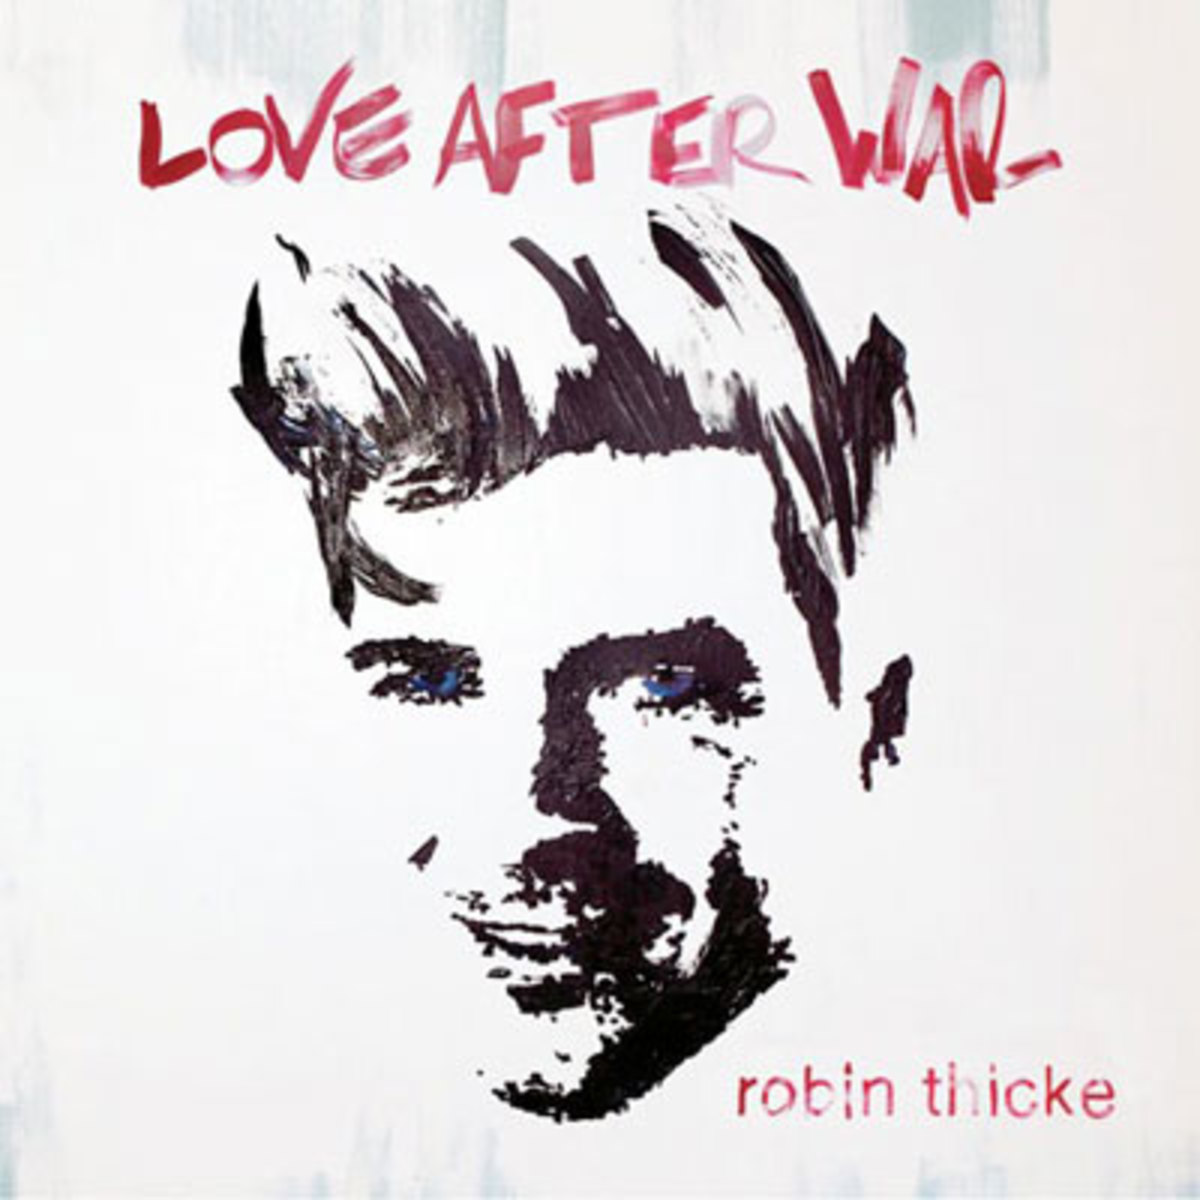 robinthicke-loveafter2.jpg